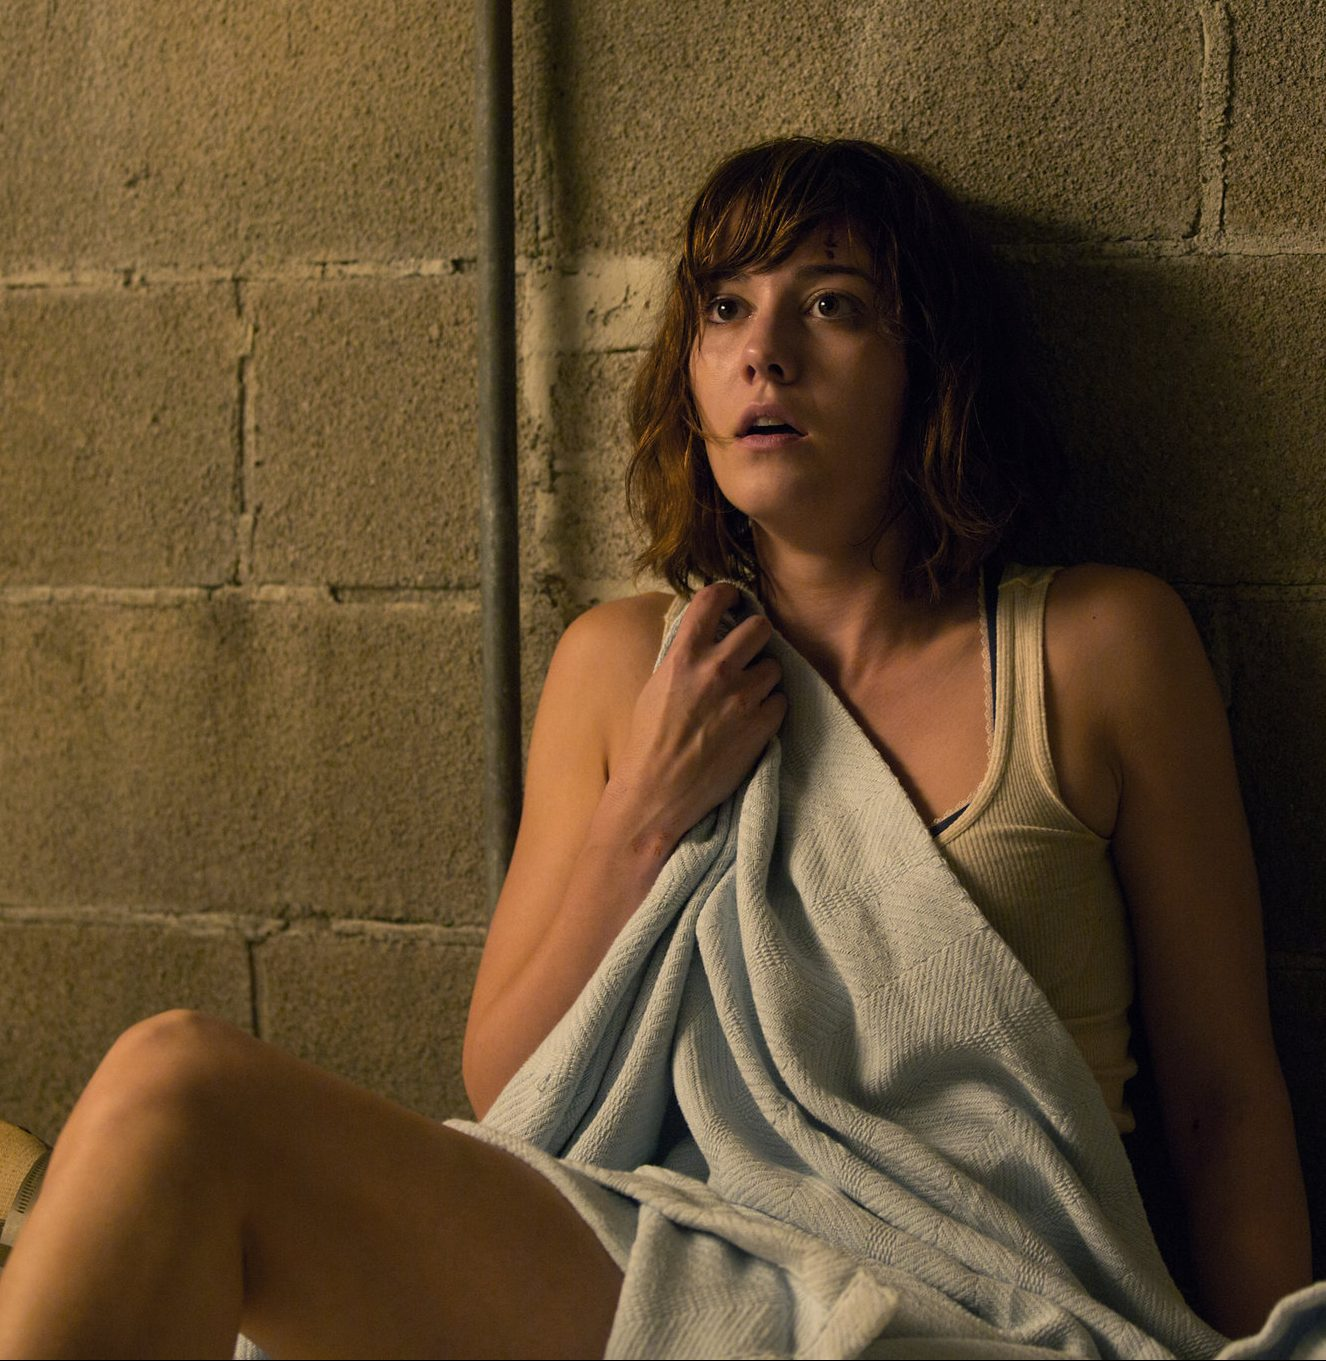 cloverfield 1 superJumbo e1583239484663 20 Horror Sequels That Are Actually Better Than The Original